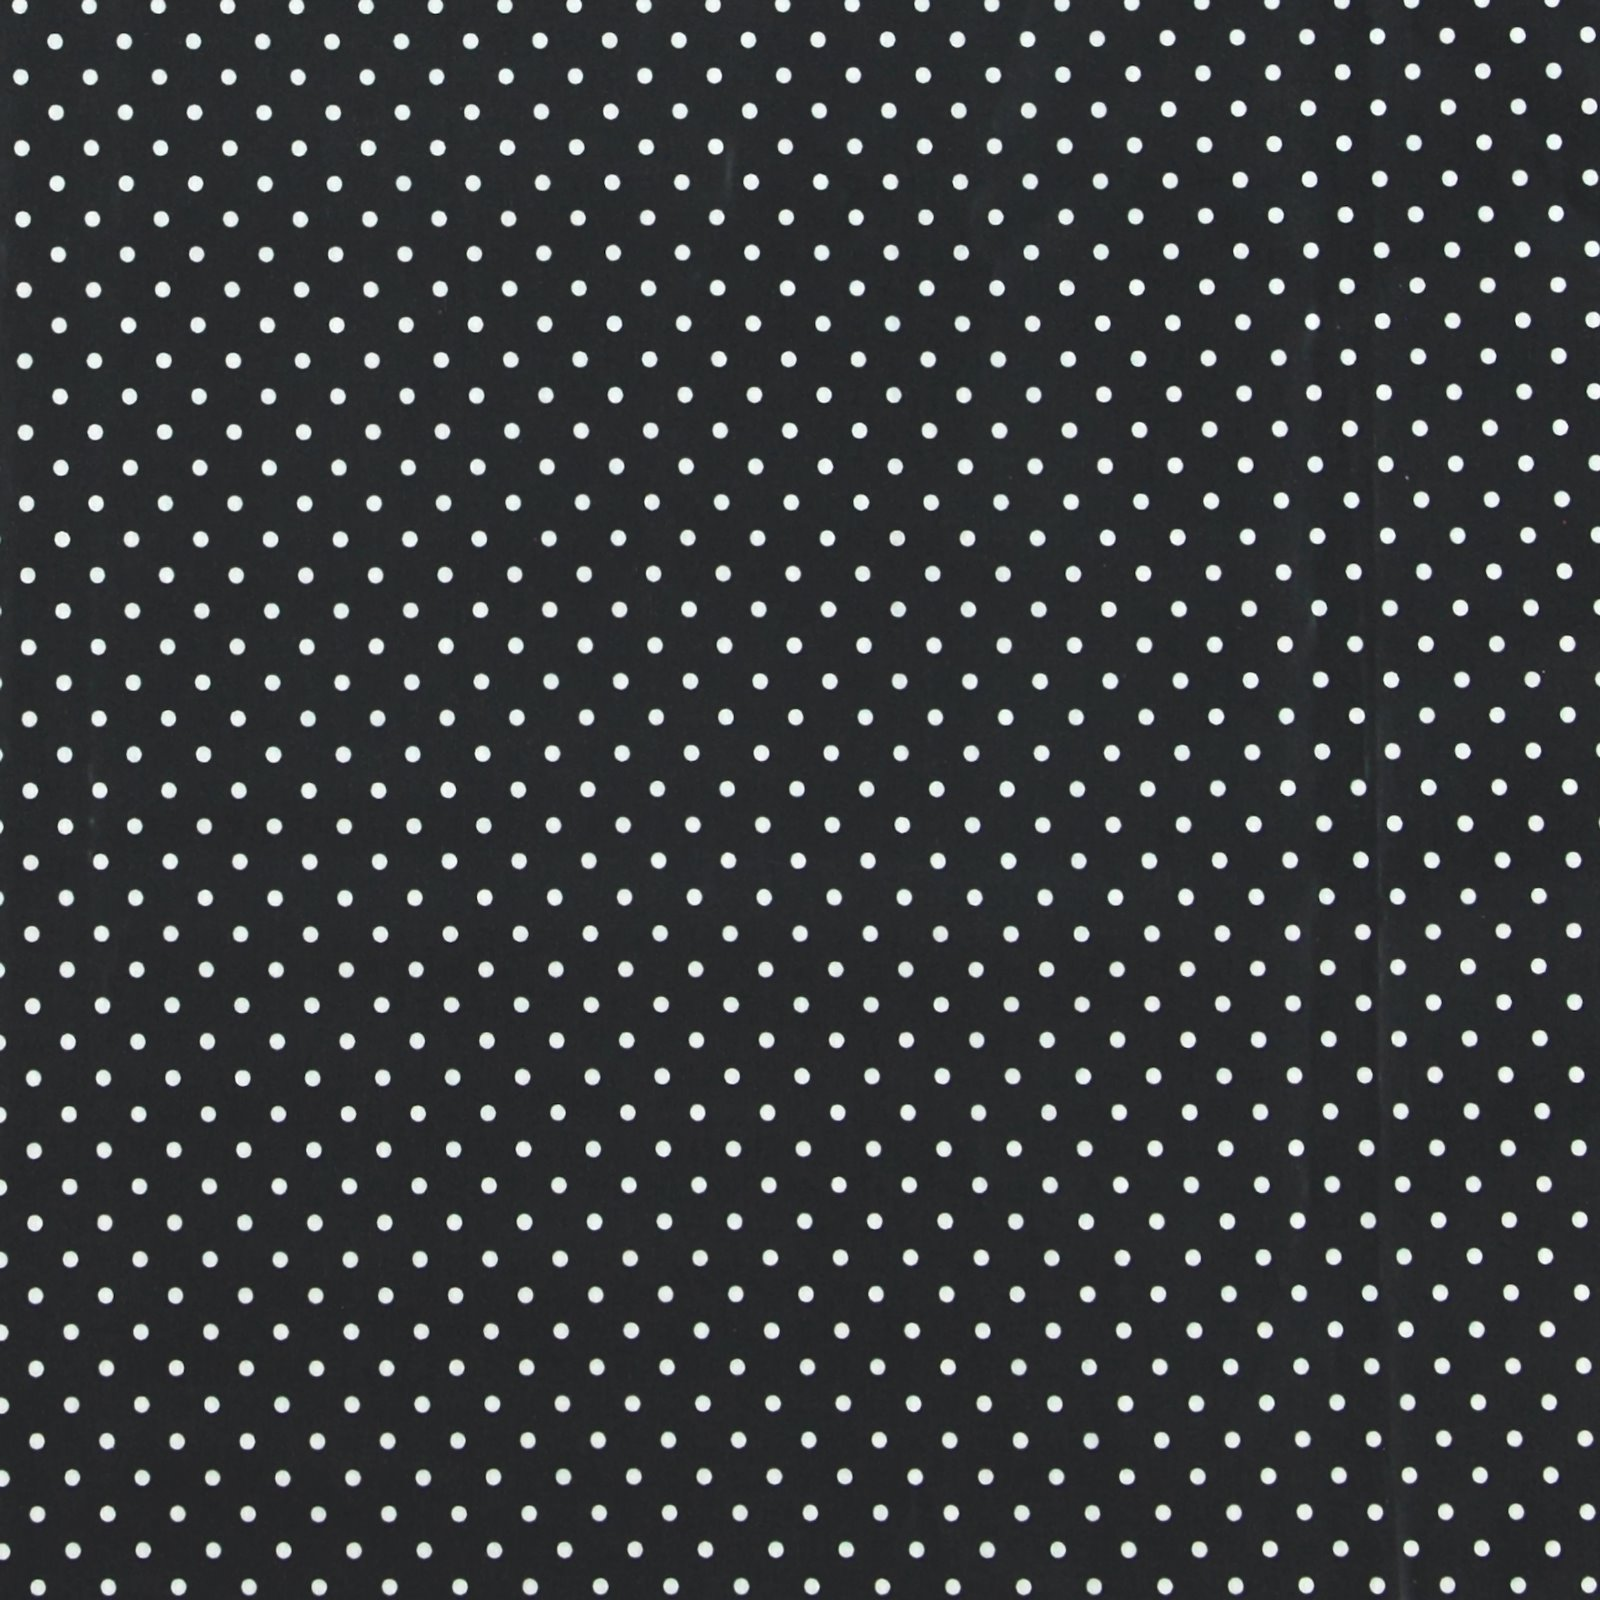 Woven oilcloth dark grey w white dots 861509_pack_sp